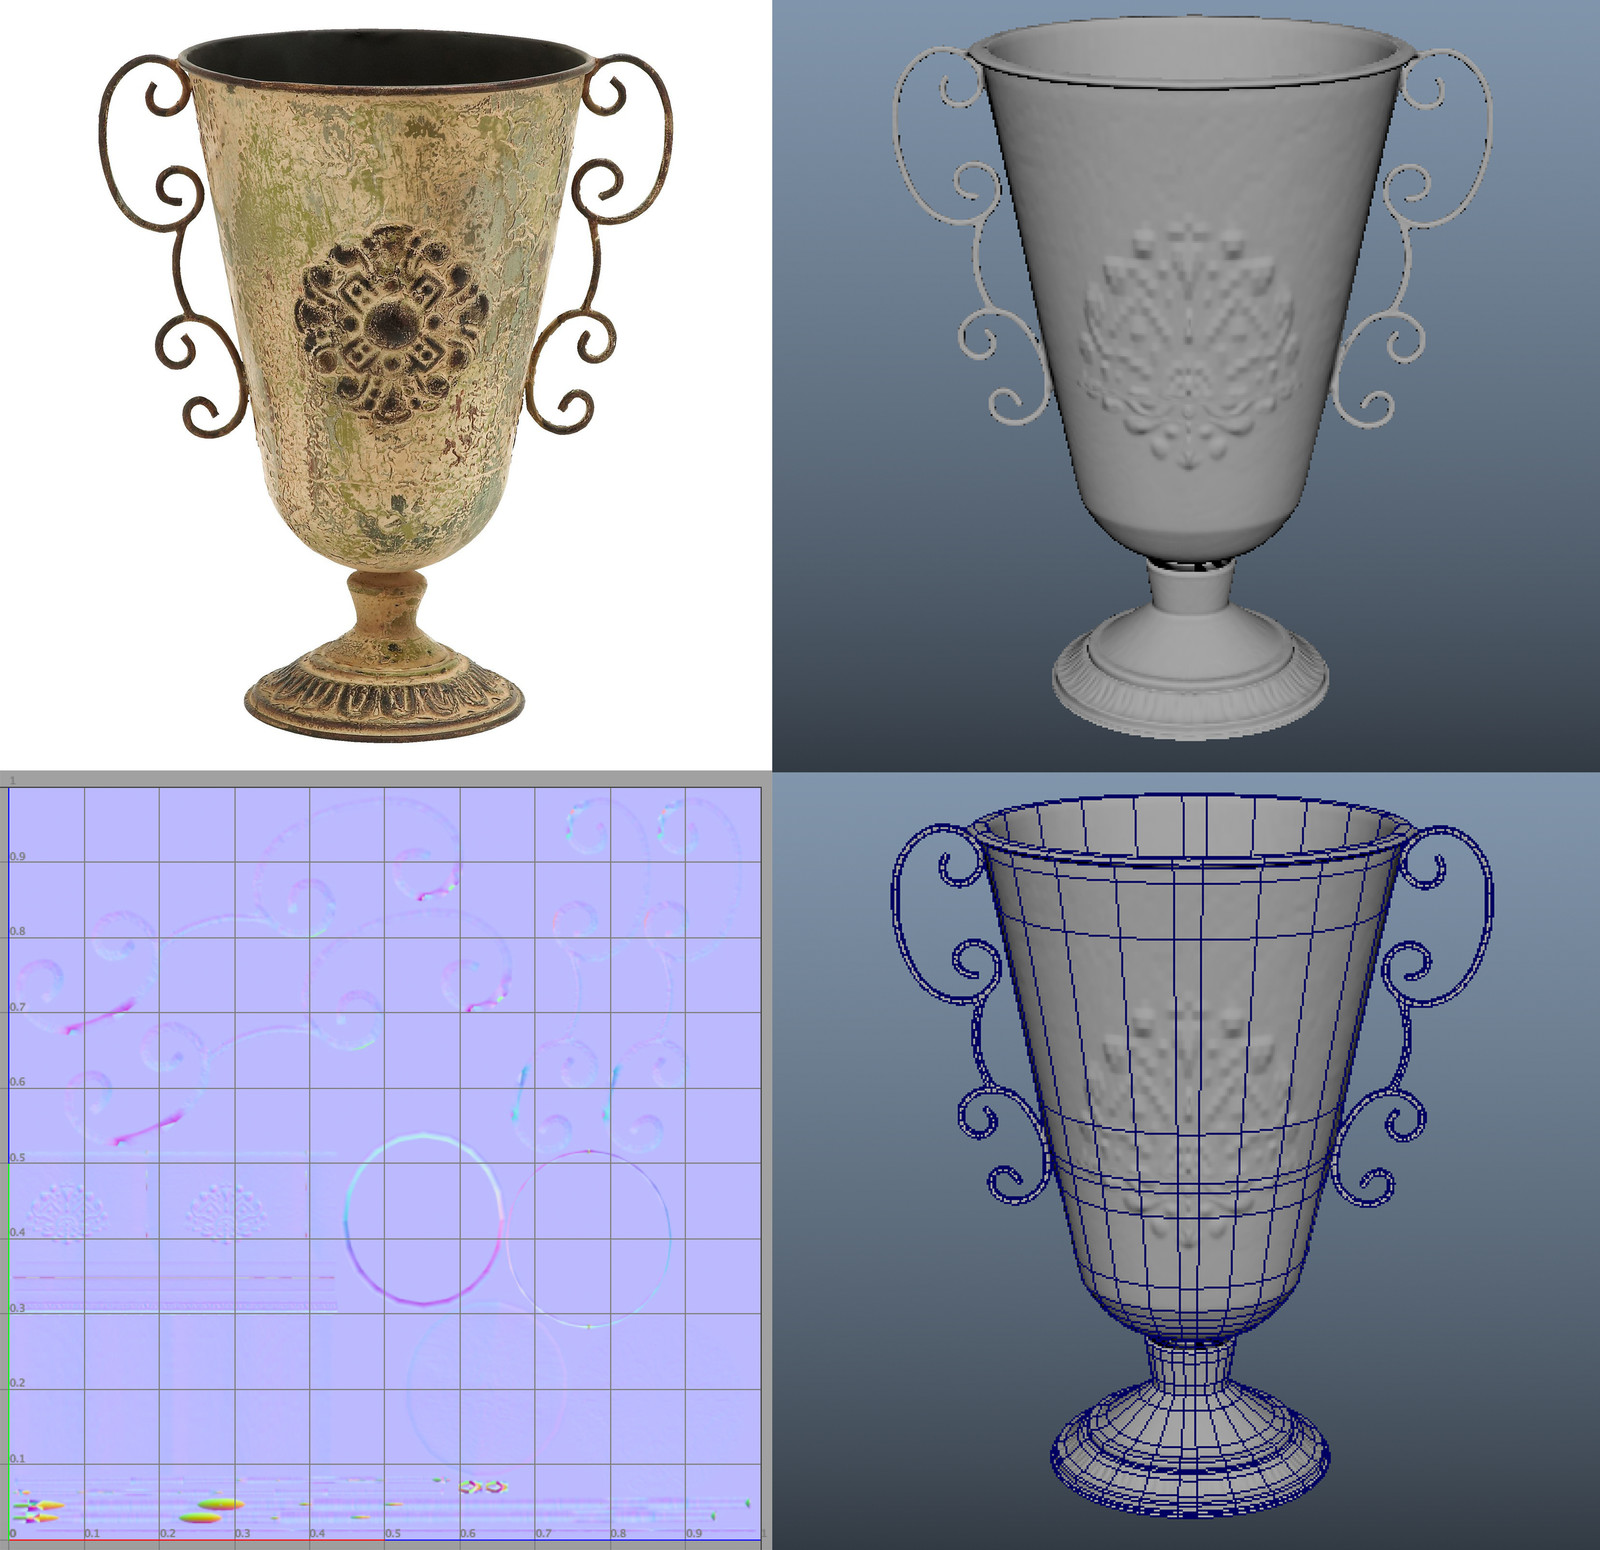 'Vase' with UV and detail